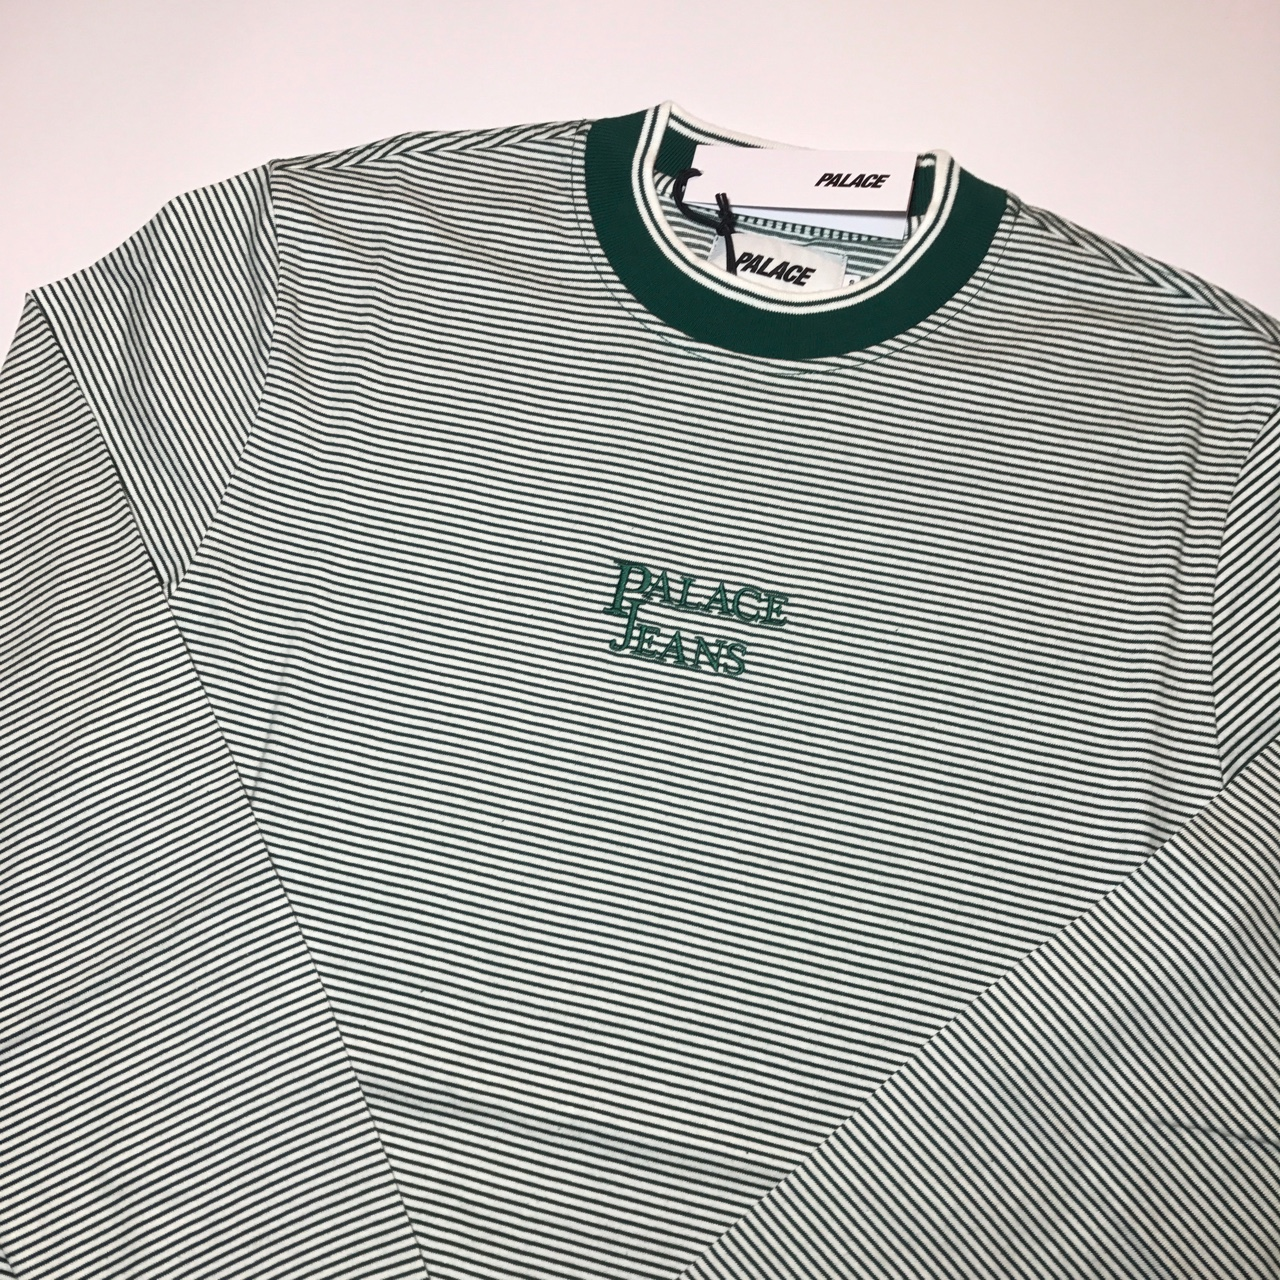 Palace Jeans LS green▪️Size small▪️Brand new▪️ Depop